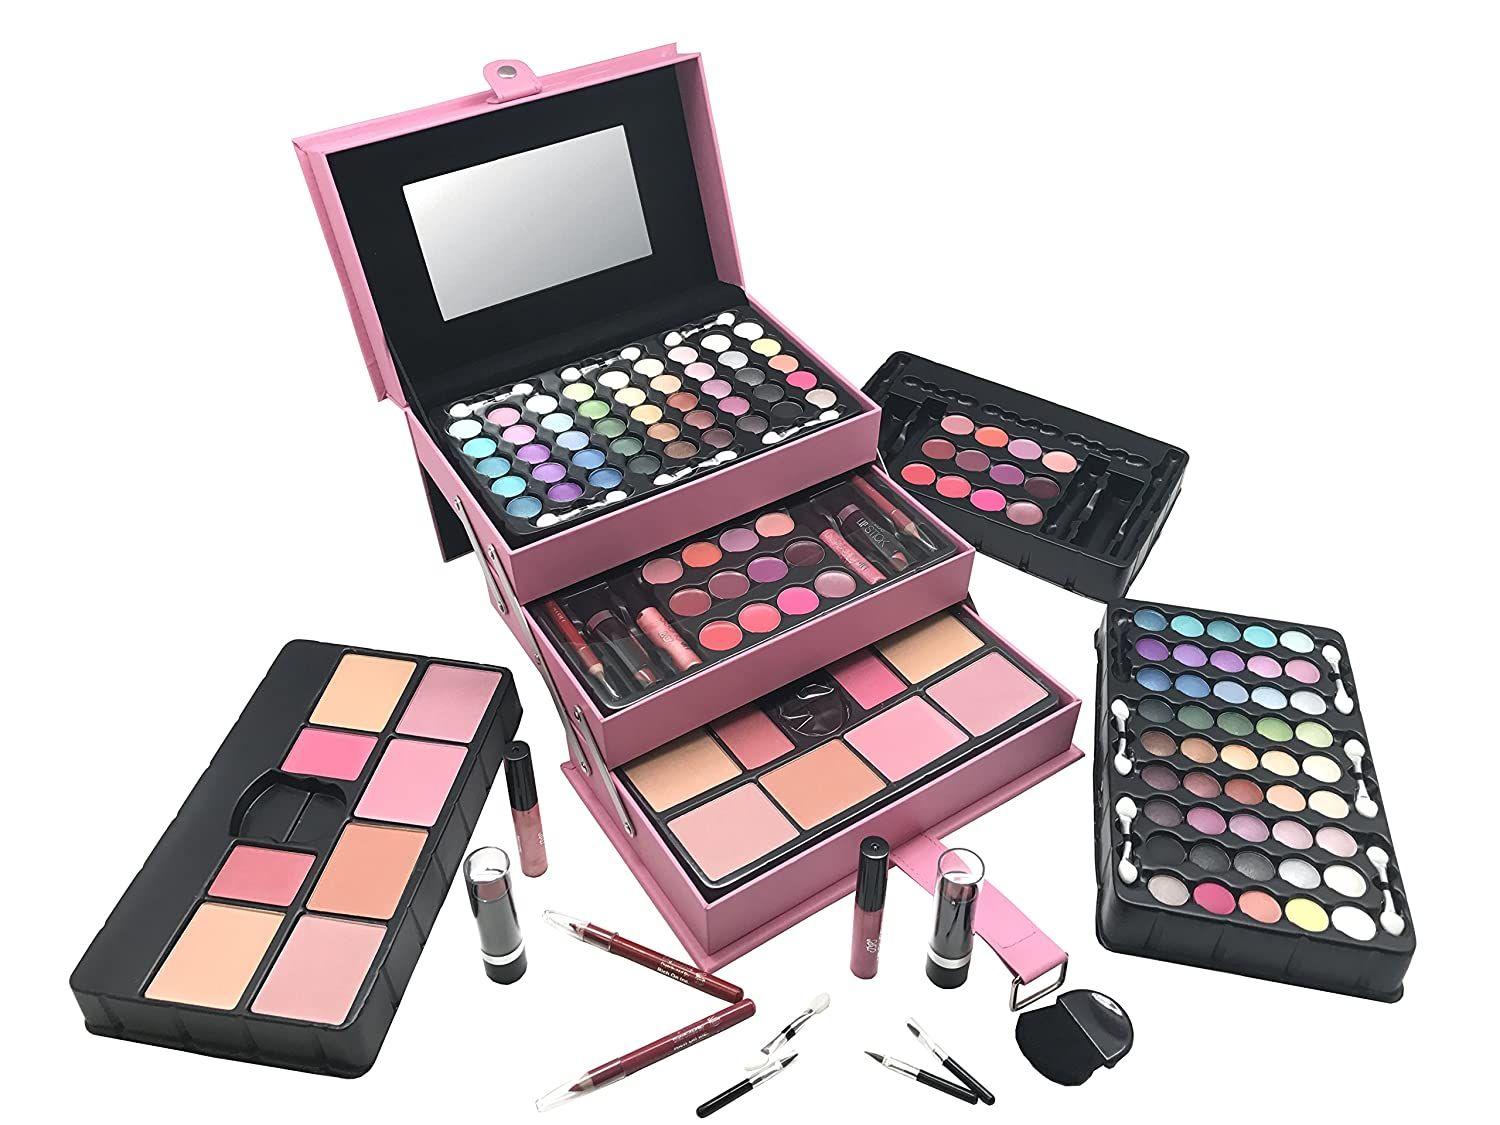 BR All In One Makeup Kit in 2020 Makeup kit, Makeup gift